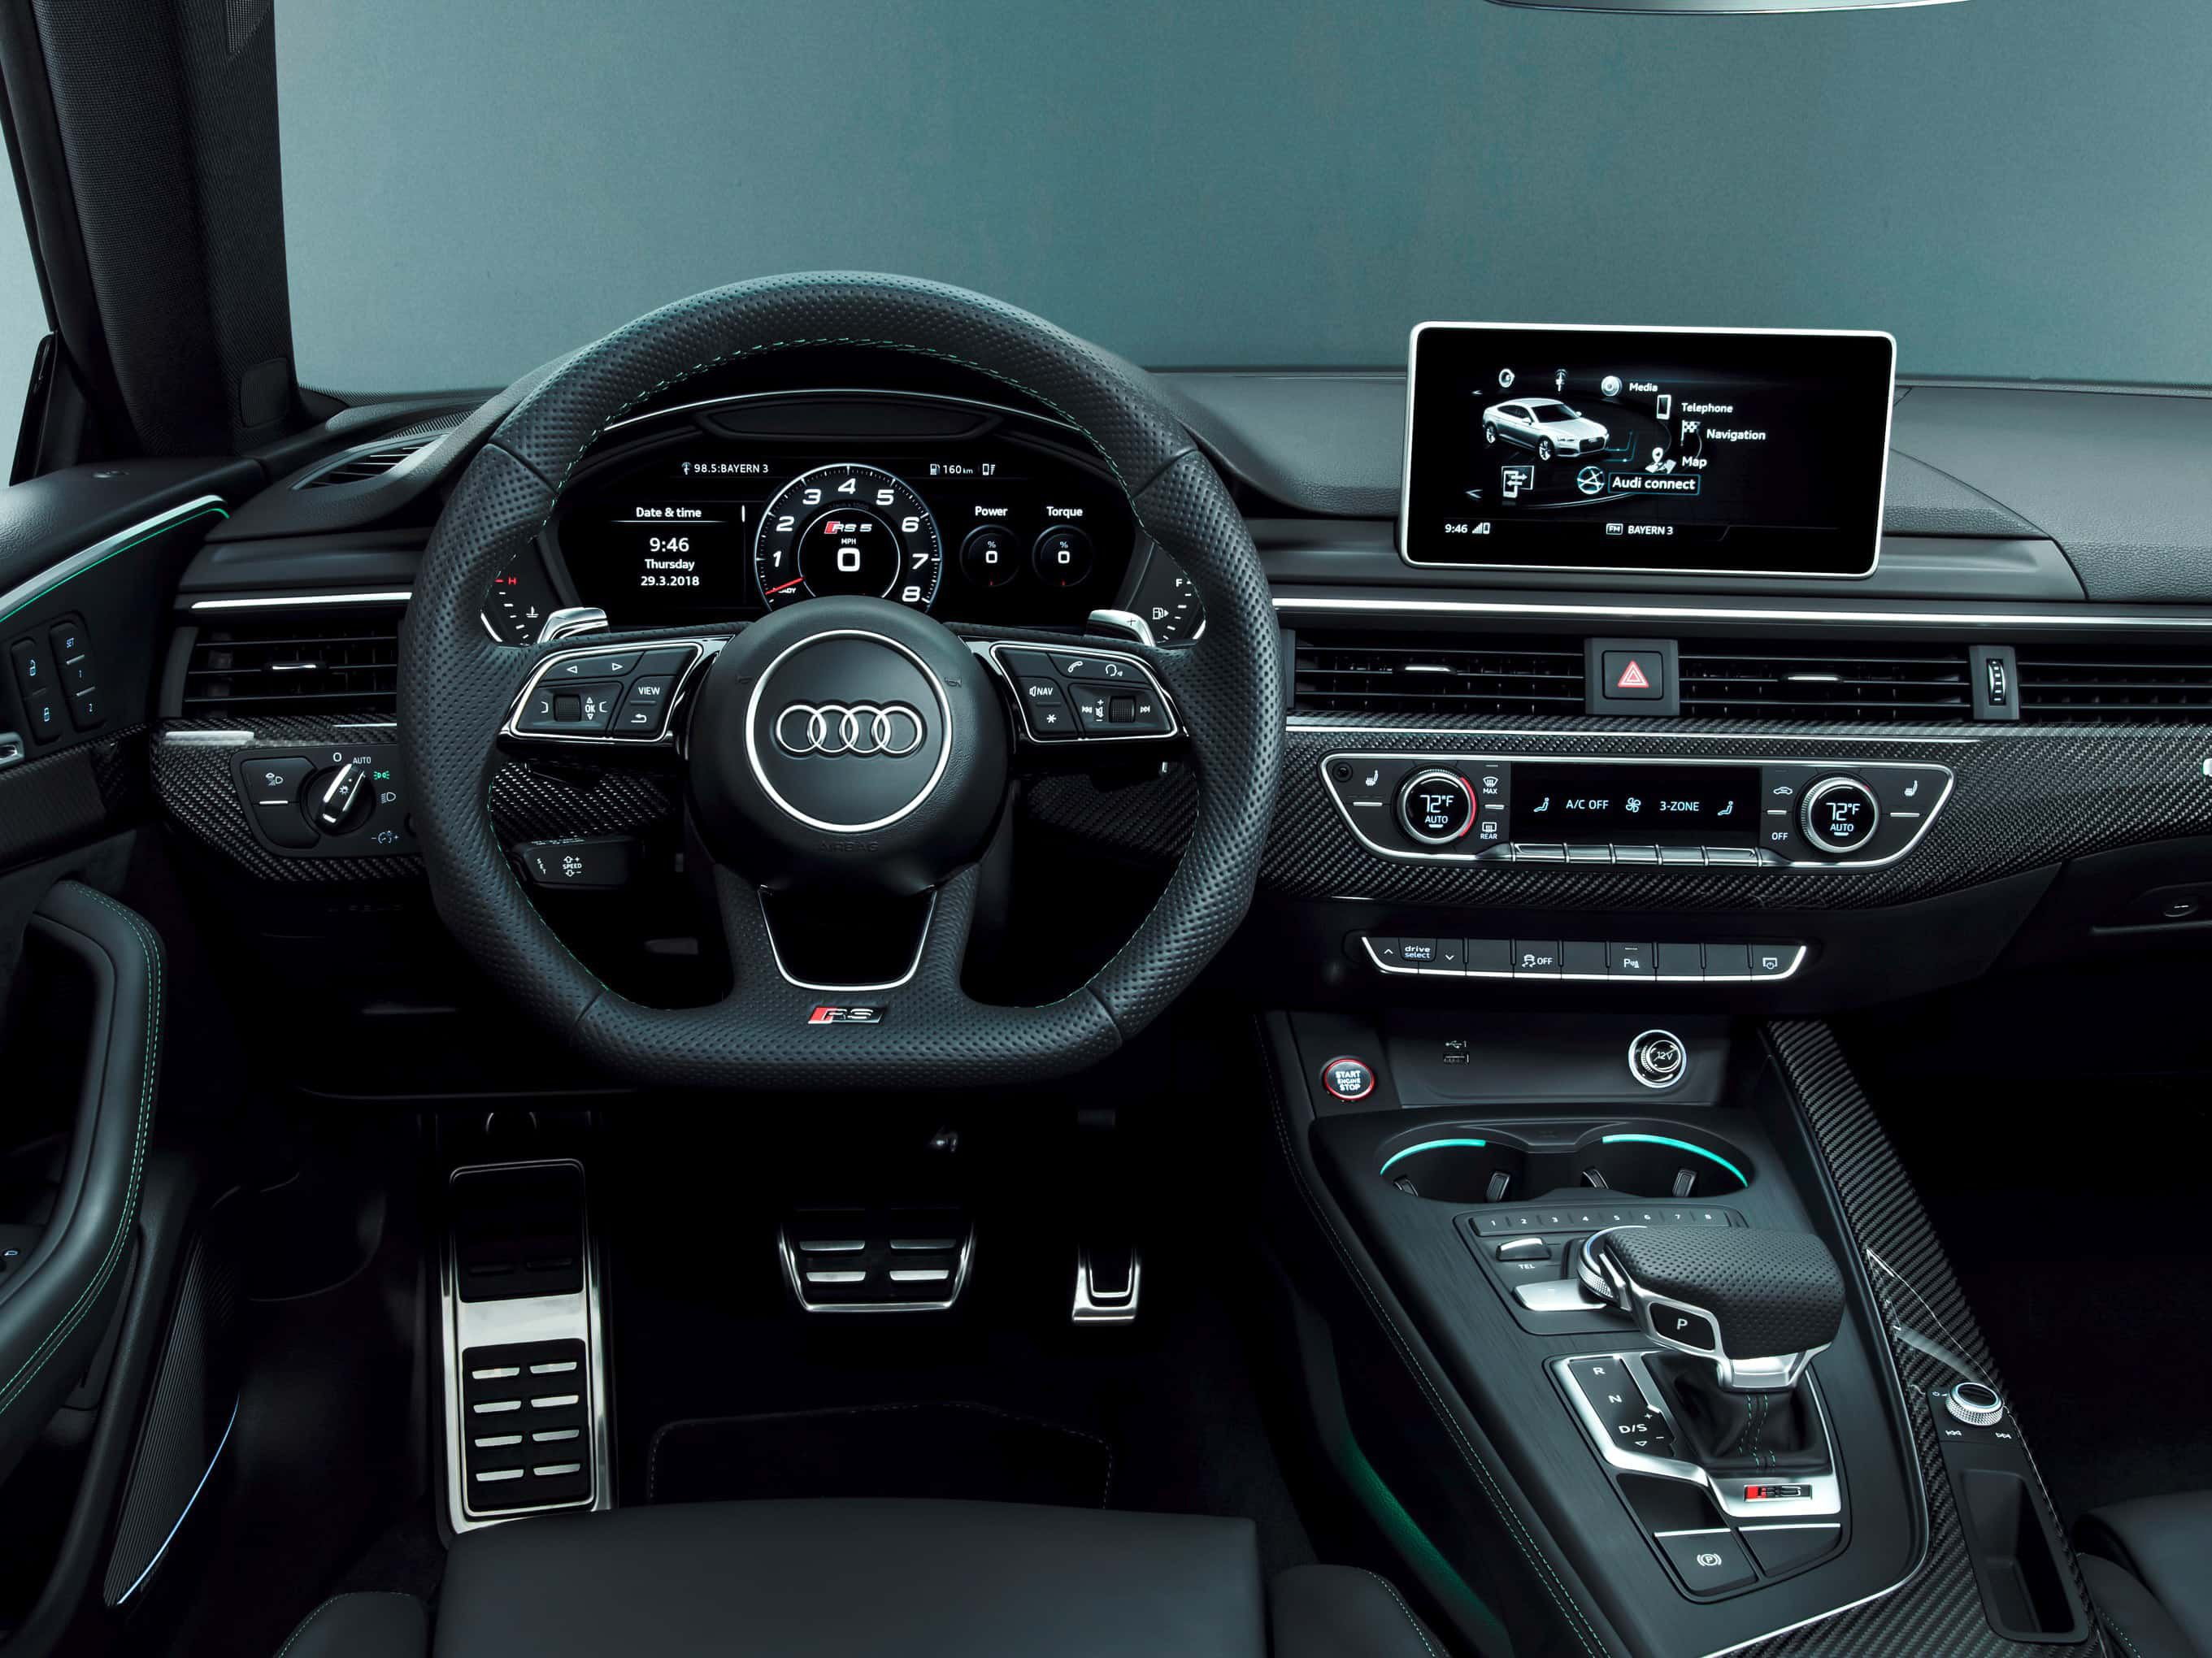 RS5 Dashboard